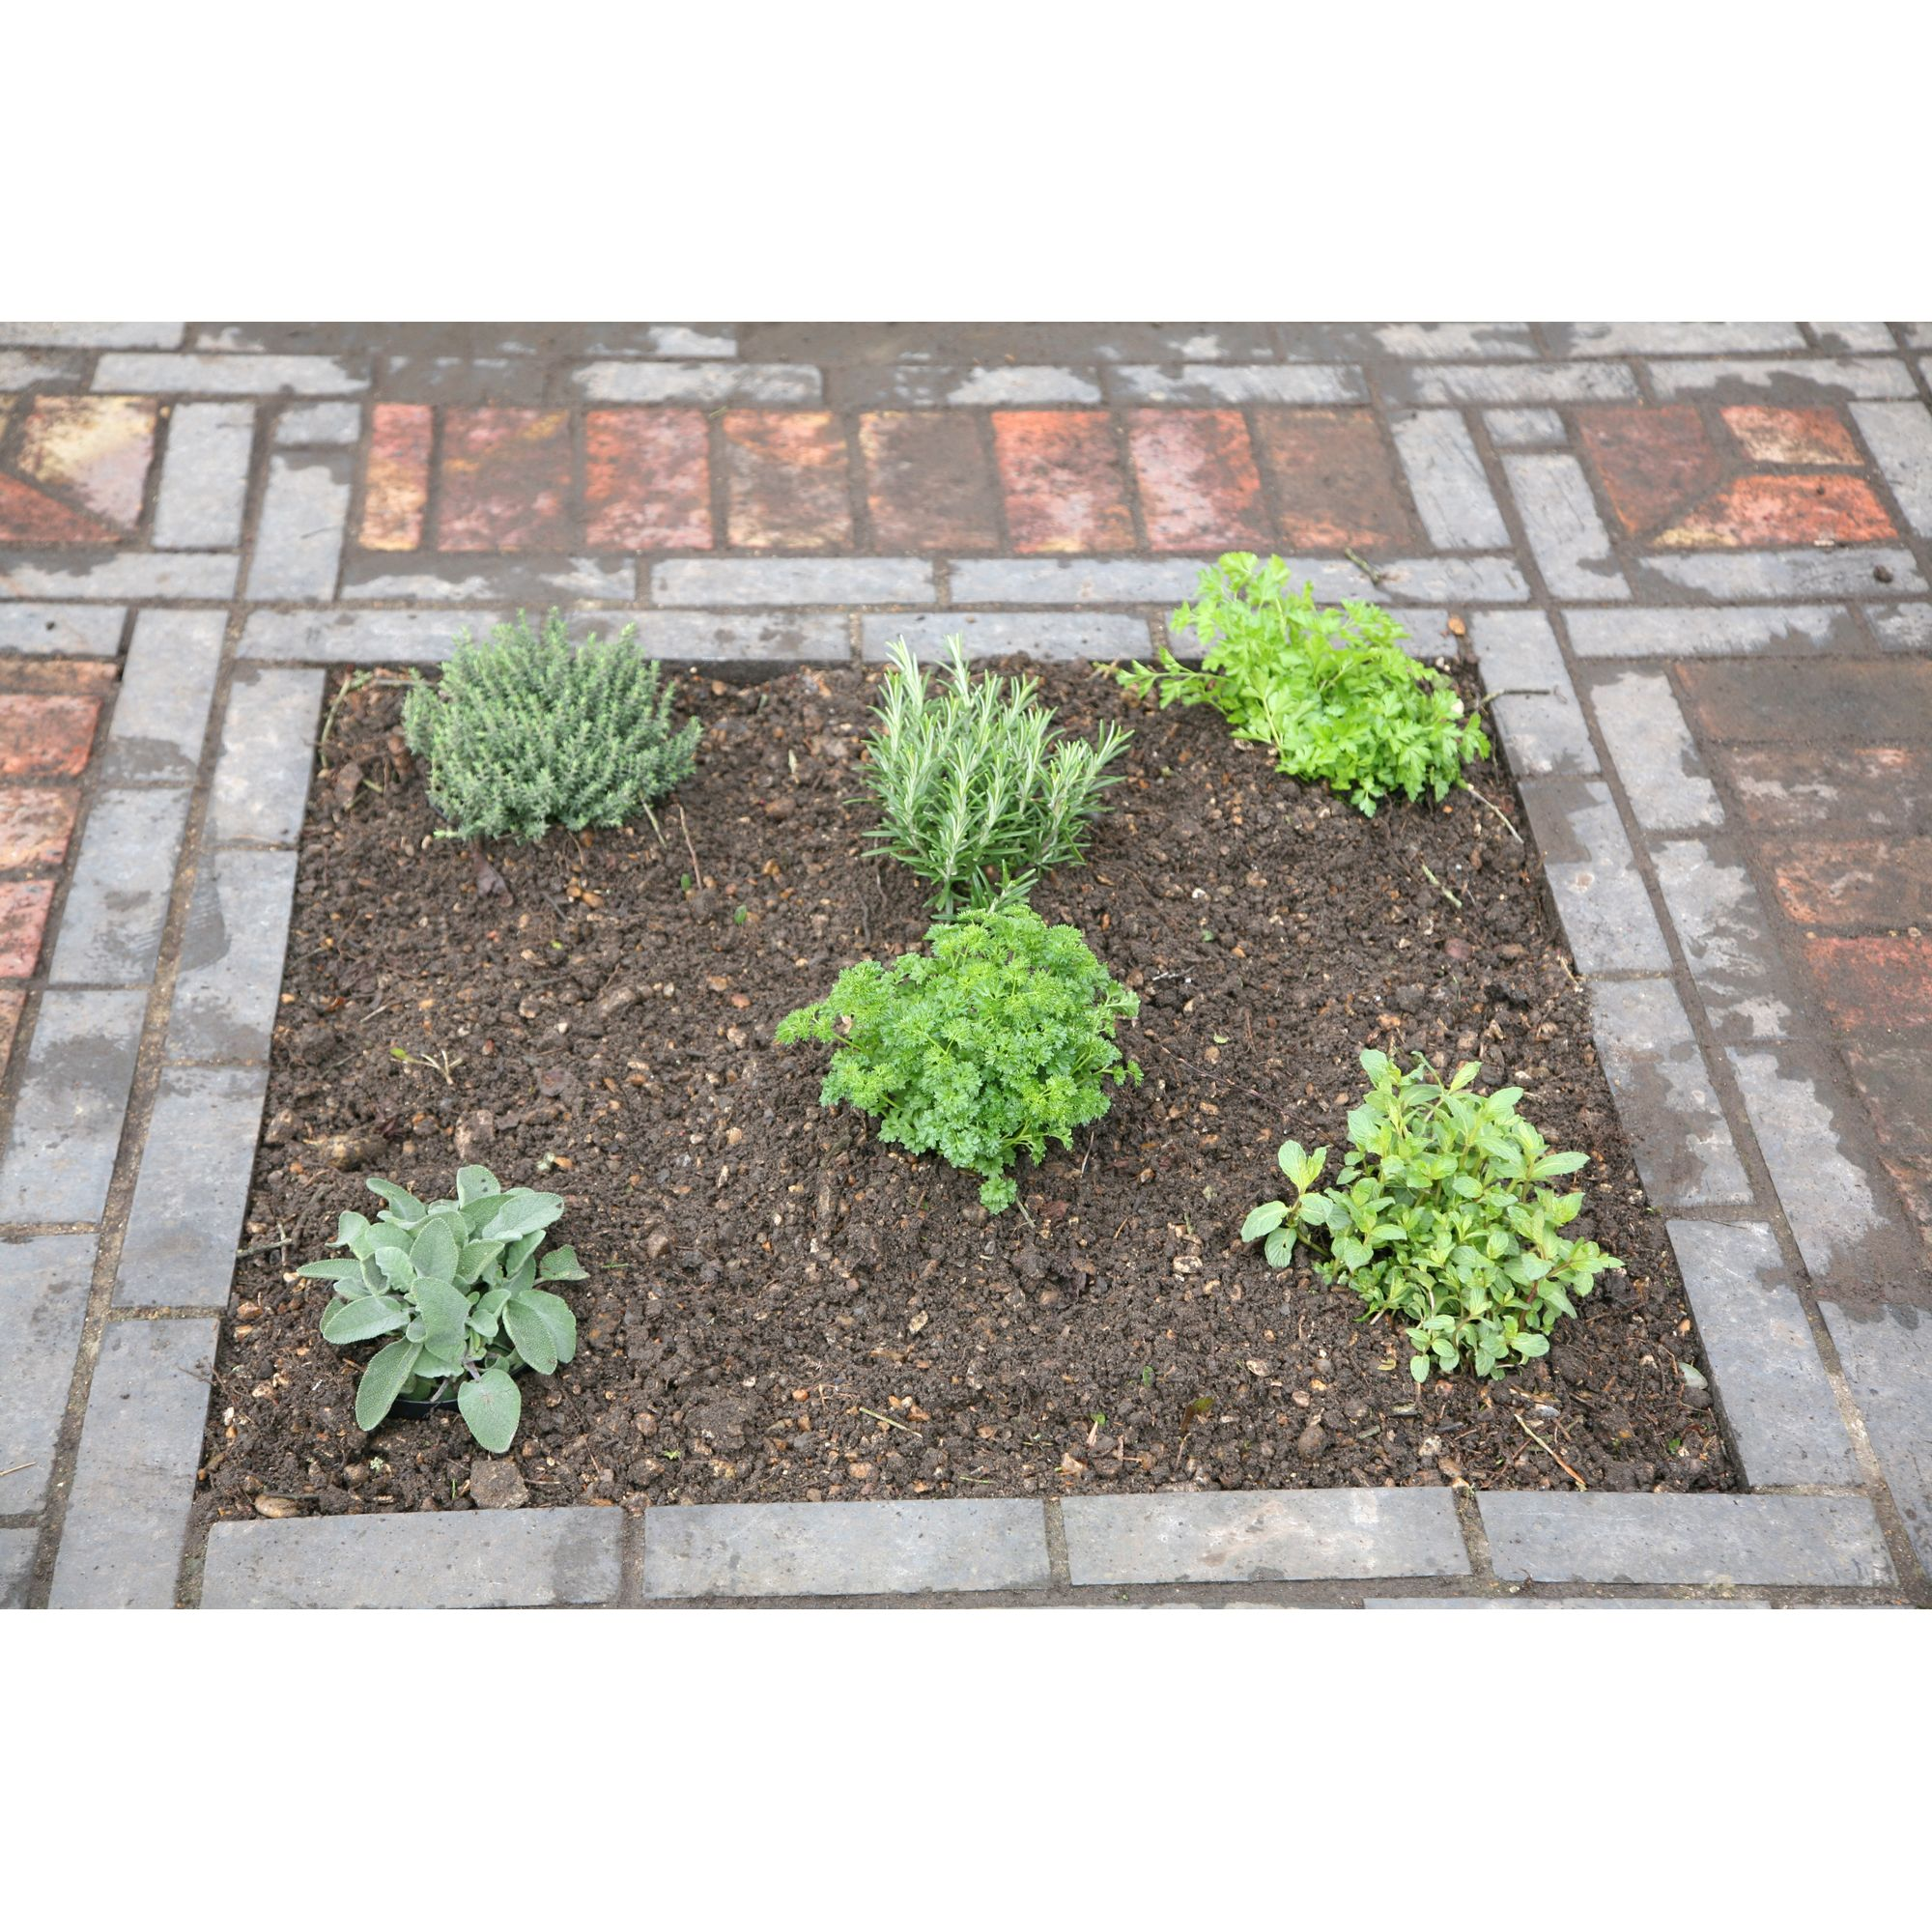 herb collection - mint, rosemary, thyme, parsley, sage and chives or lavender (Herb collection (6 mixed herbs))